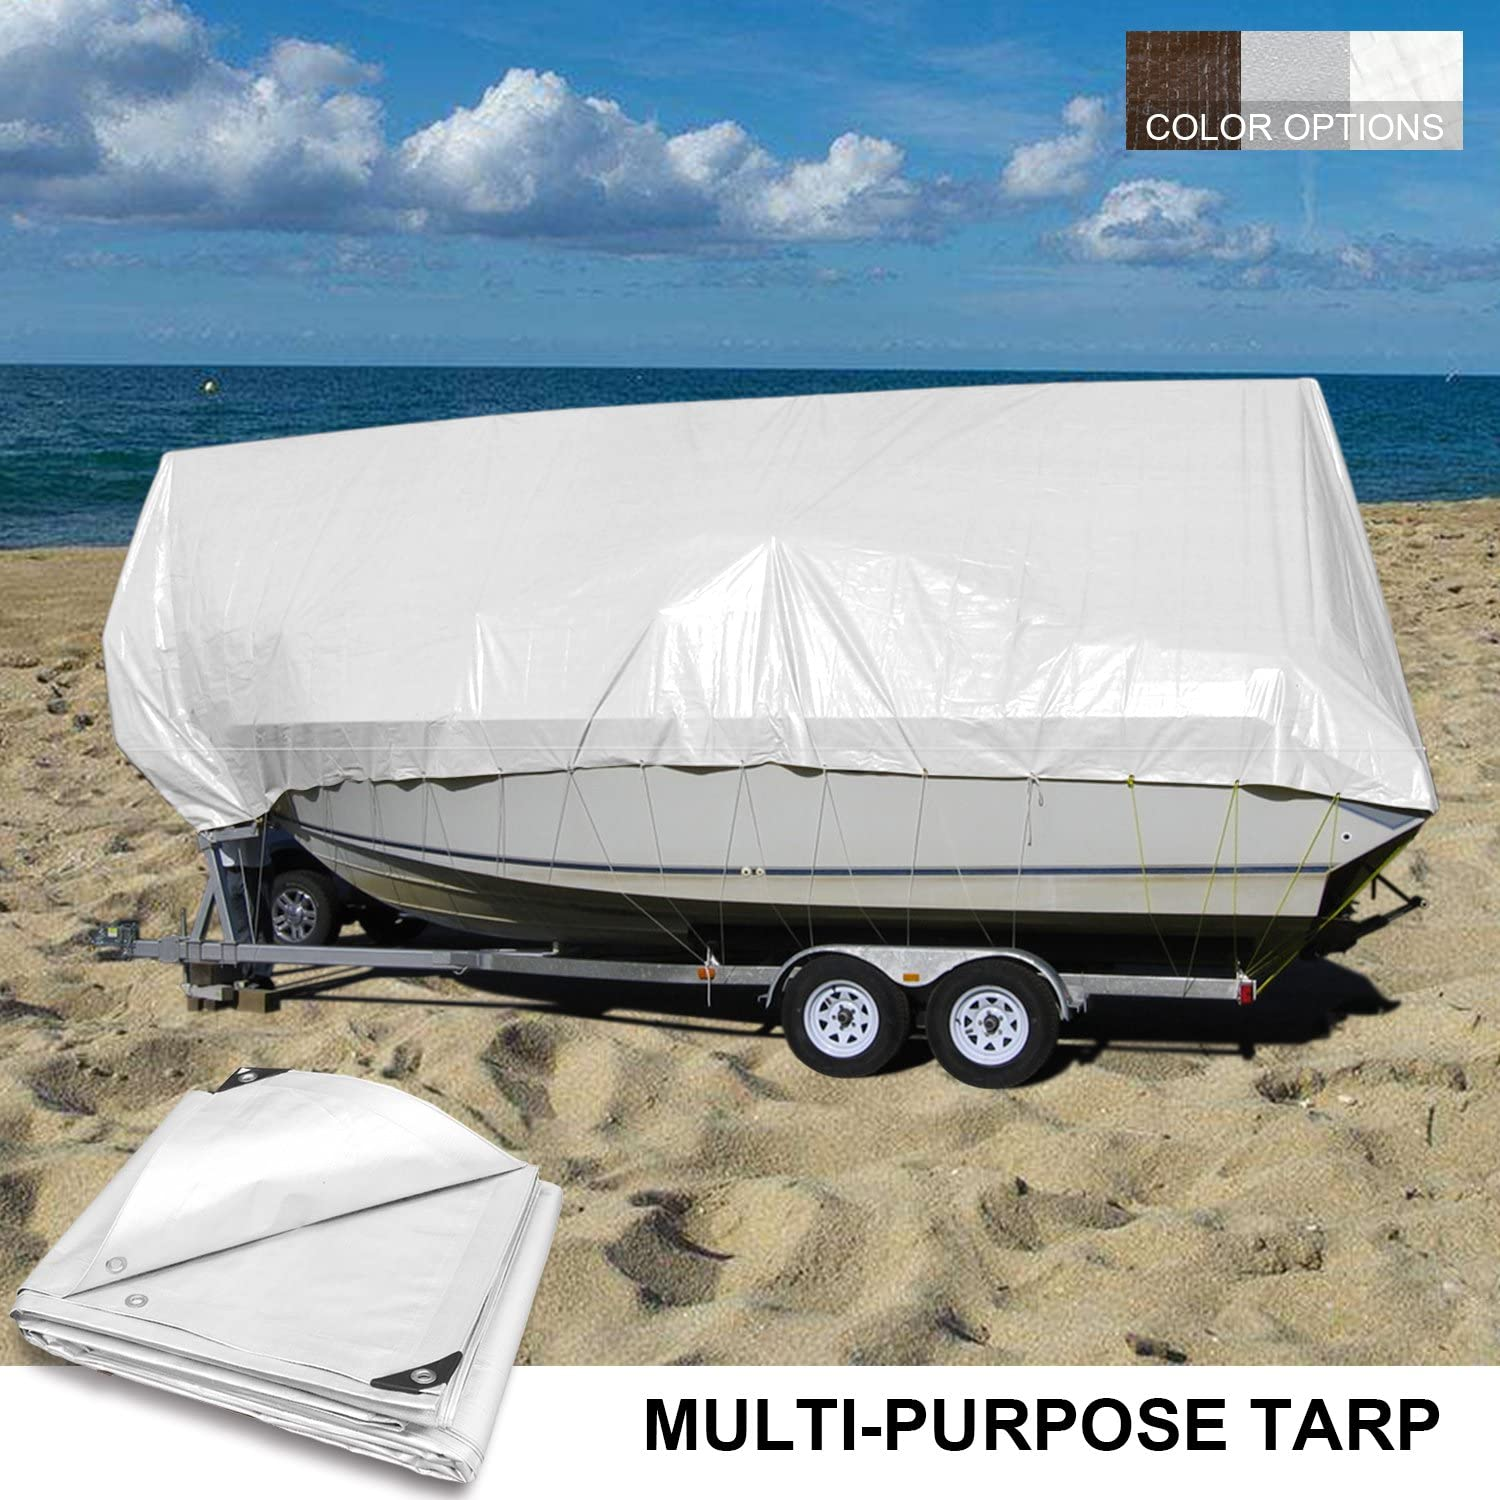 Coarbor 6 x 8 Waterproof Tarp Matertial 5 Mil Protect Outdoor Boat RV Pool Cover Blue